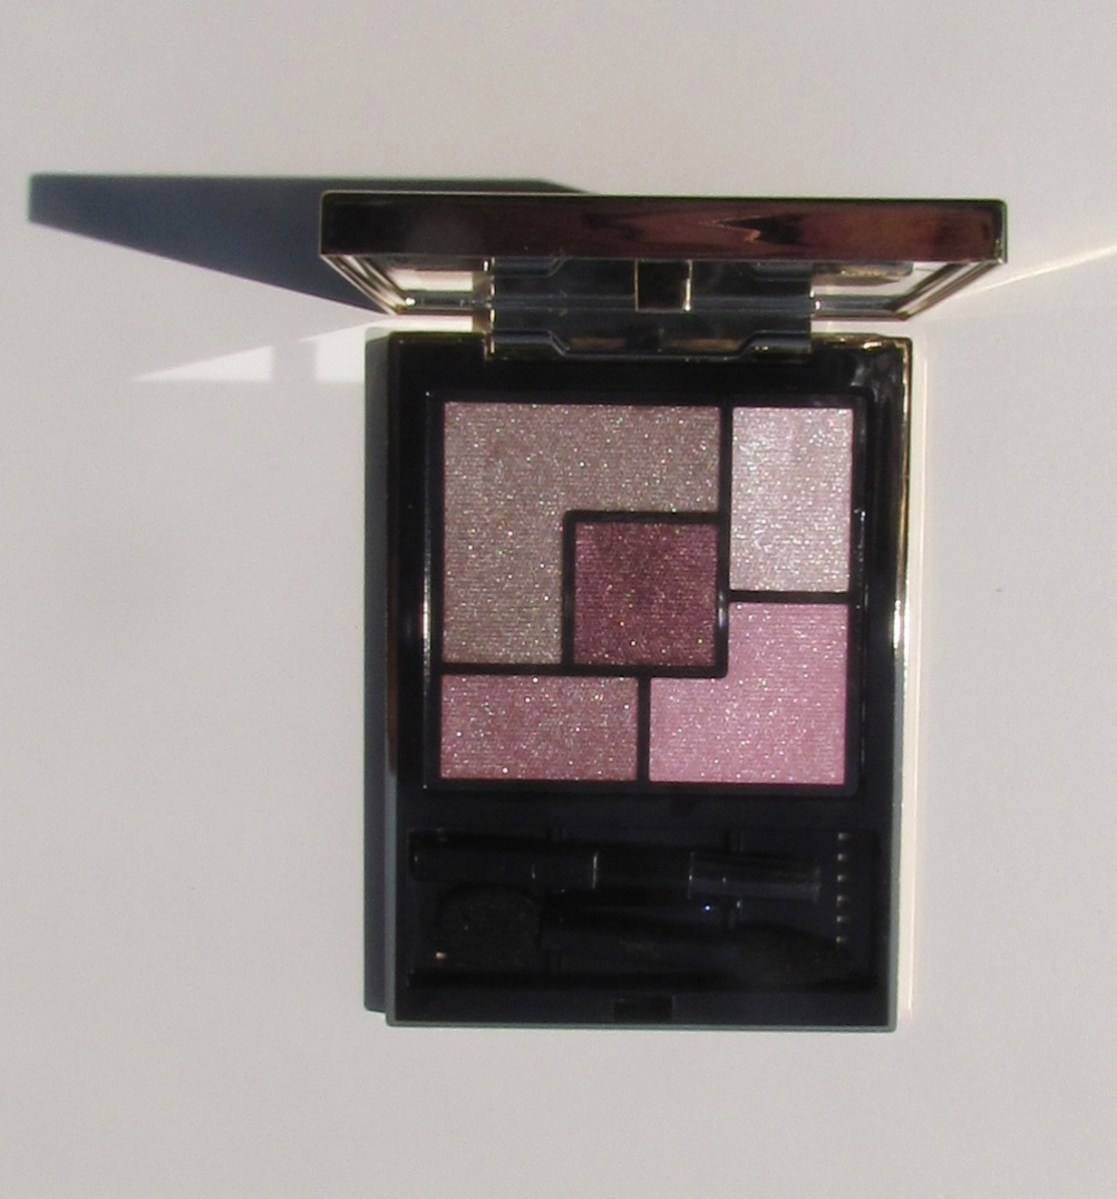 YSL Couture Palette #7 Review & Swatches